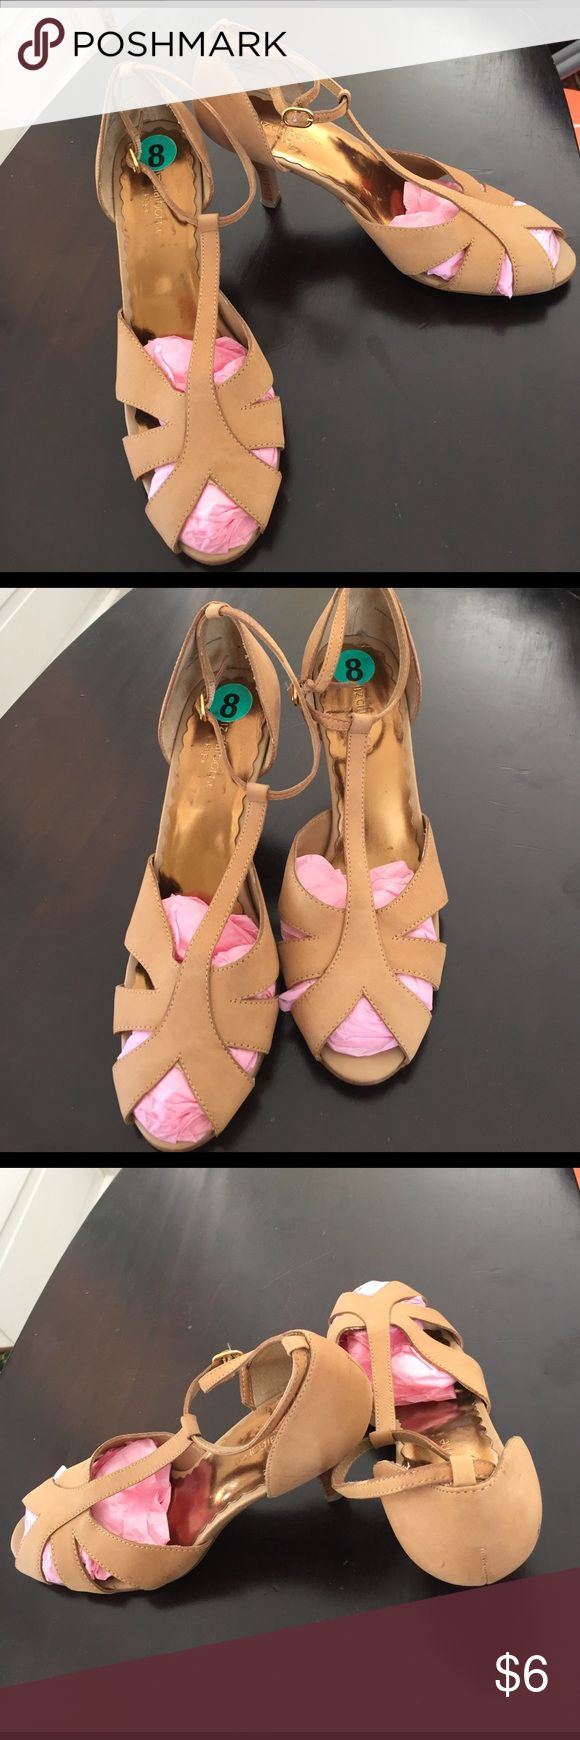 """Tan soft leather upper T-strap spring heels. Liz Claiborne FLEX heels, purchased for """"ballroom"""" dance practice at home .. several scuff marks, but a very comfortable, nice sole ... ready for going out. The cross-over toe and T-strap make them appropriate for work. Liz Claiborne Shoes Sandals"""